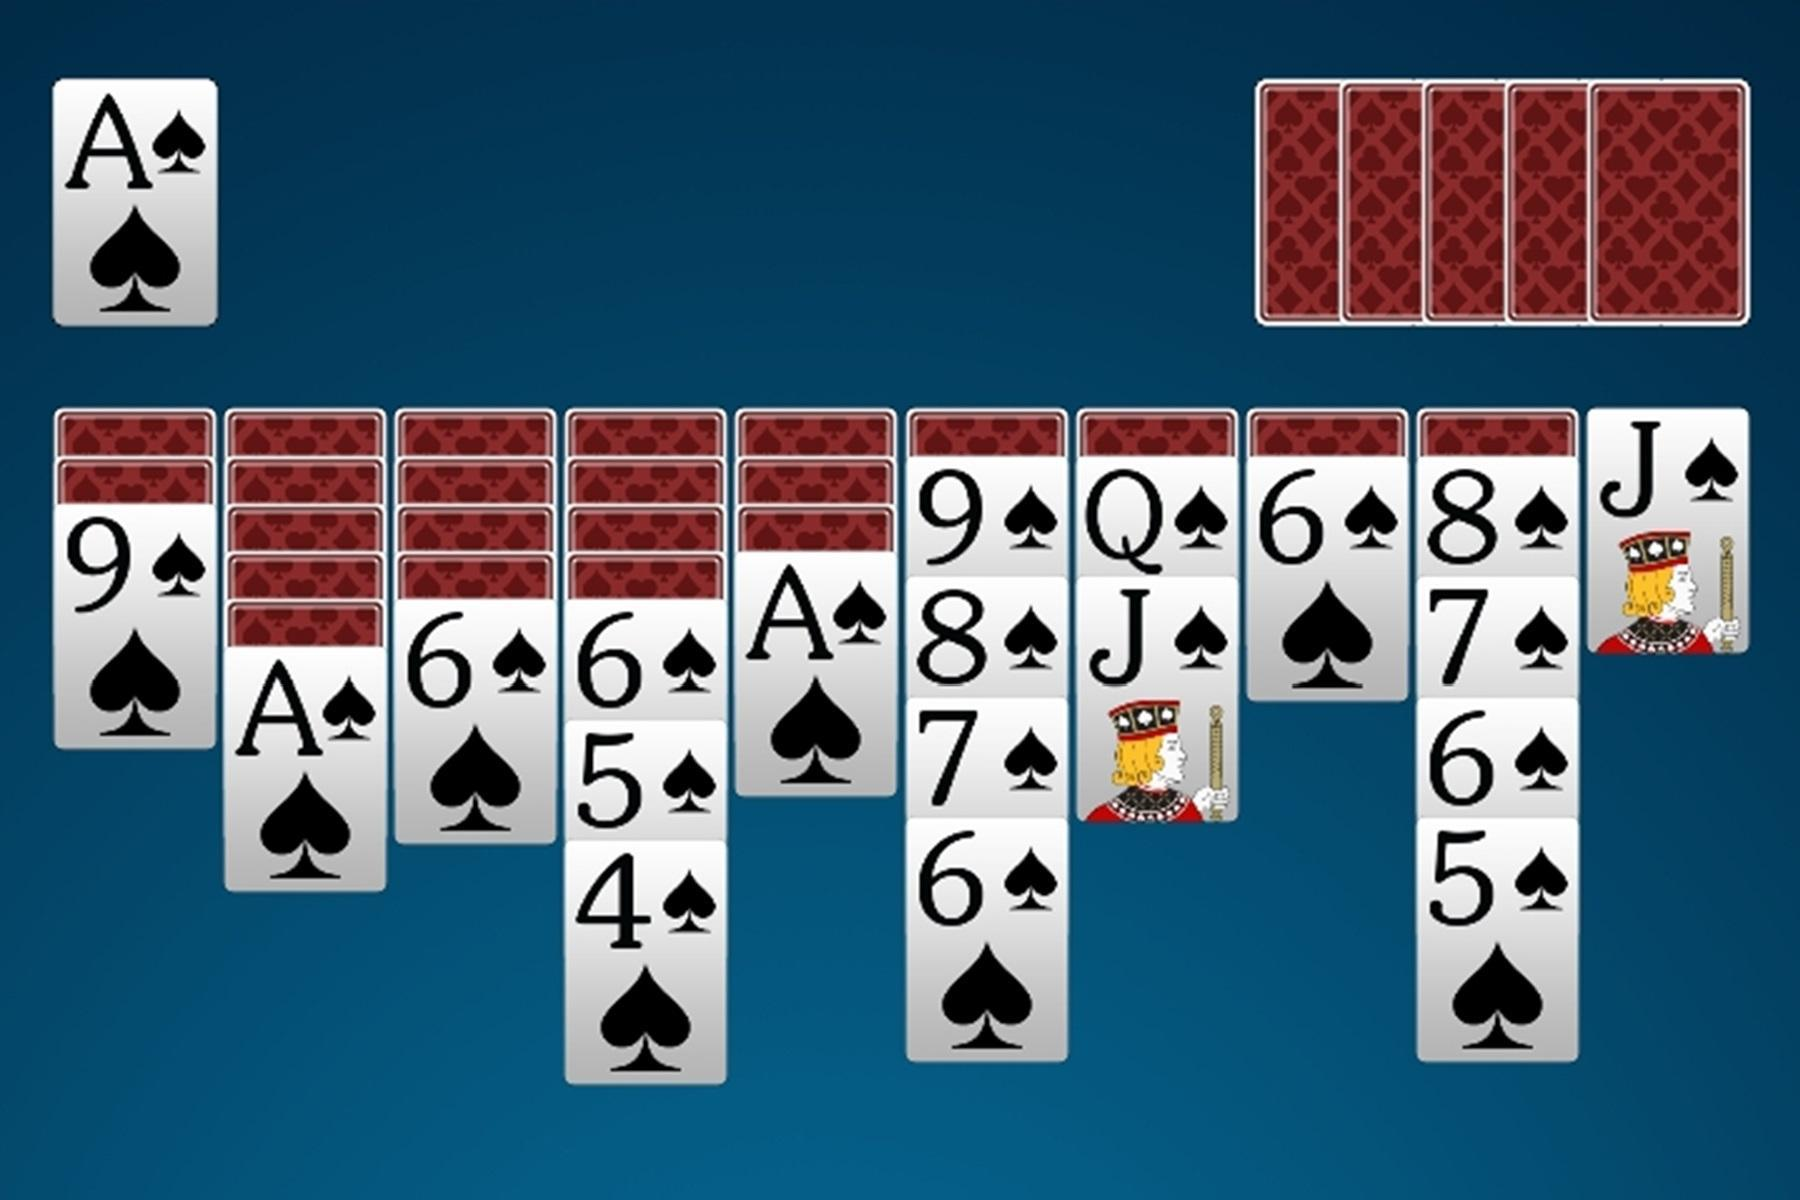 Spider Solitaire 4.4 Screenshot 2